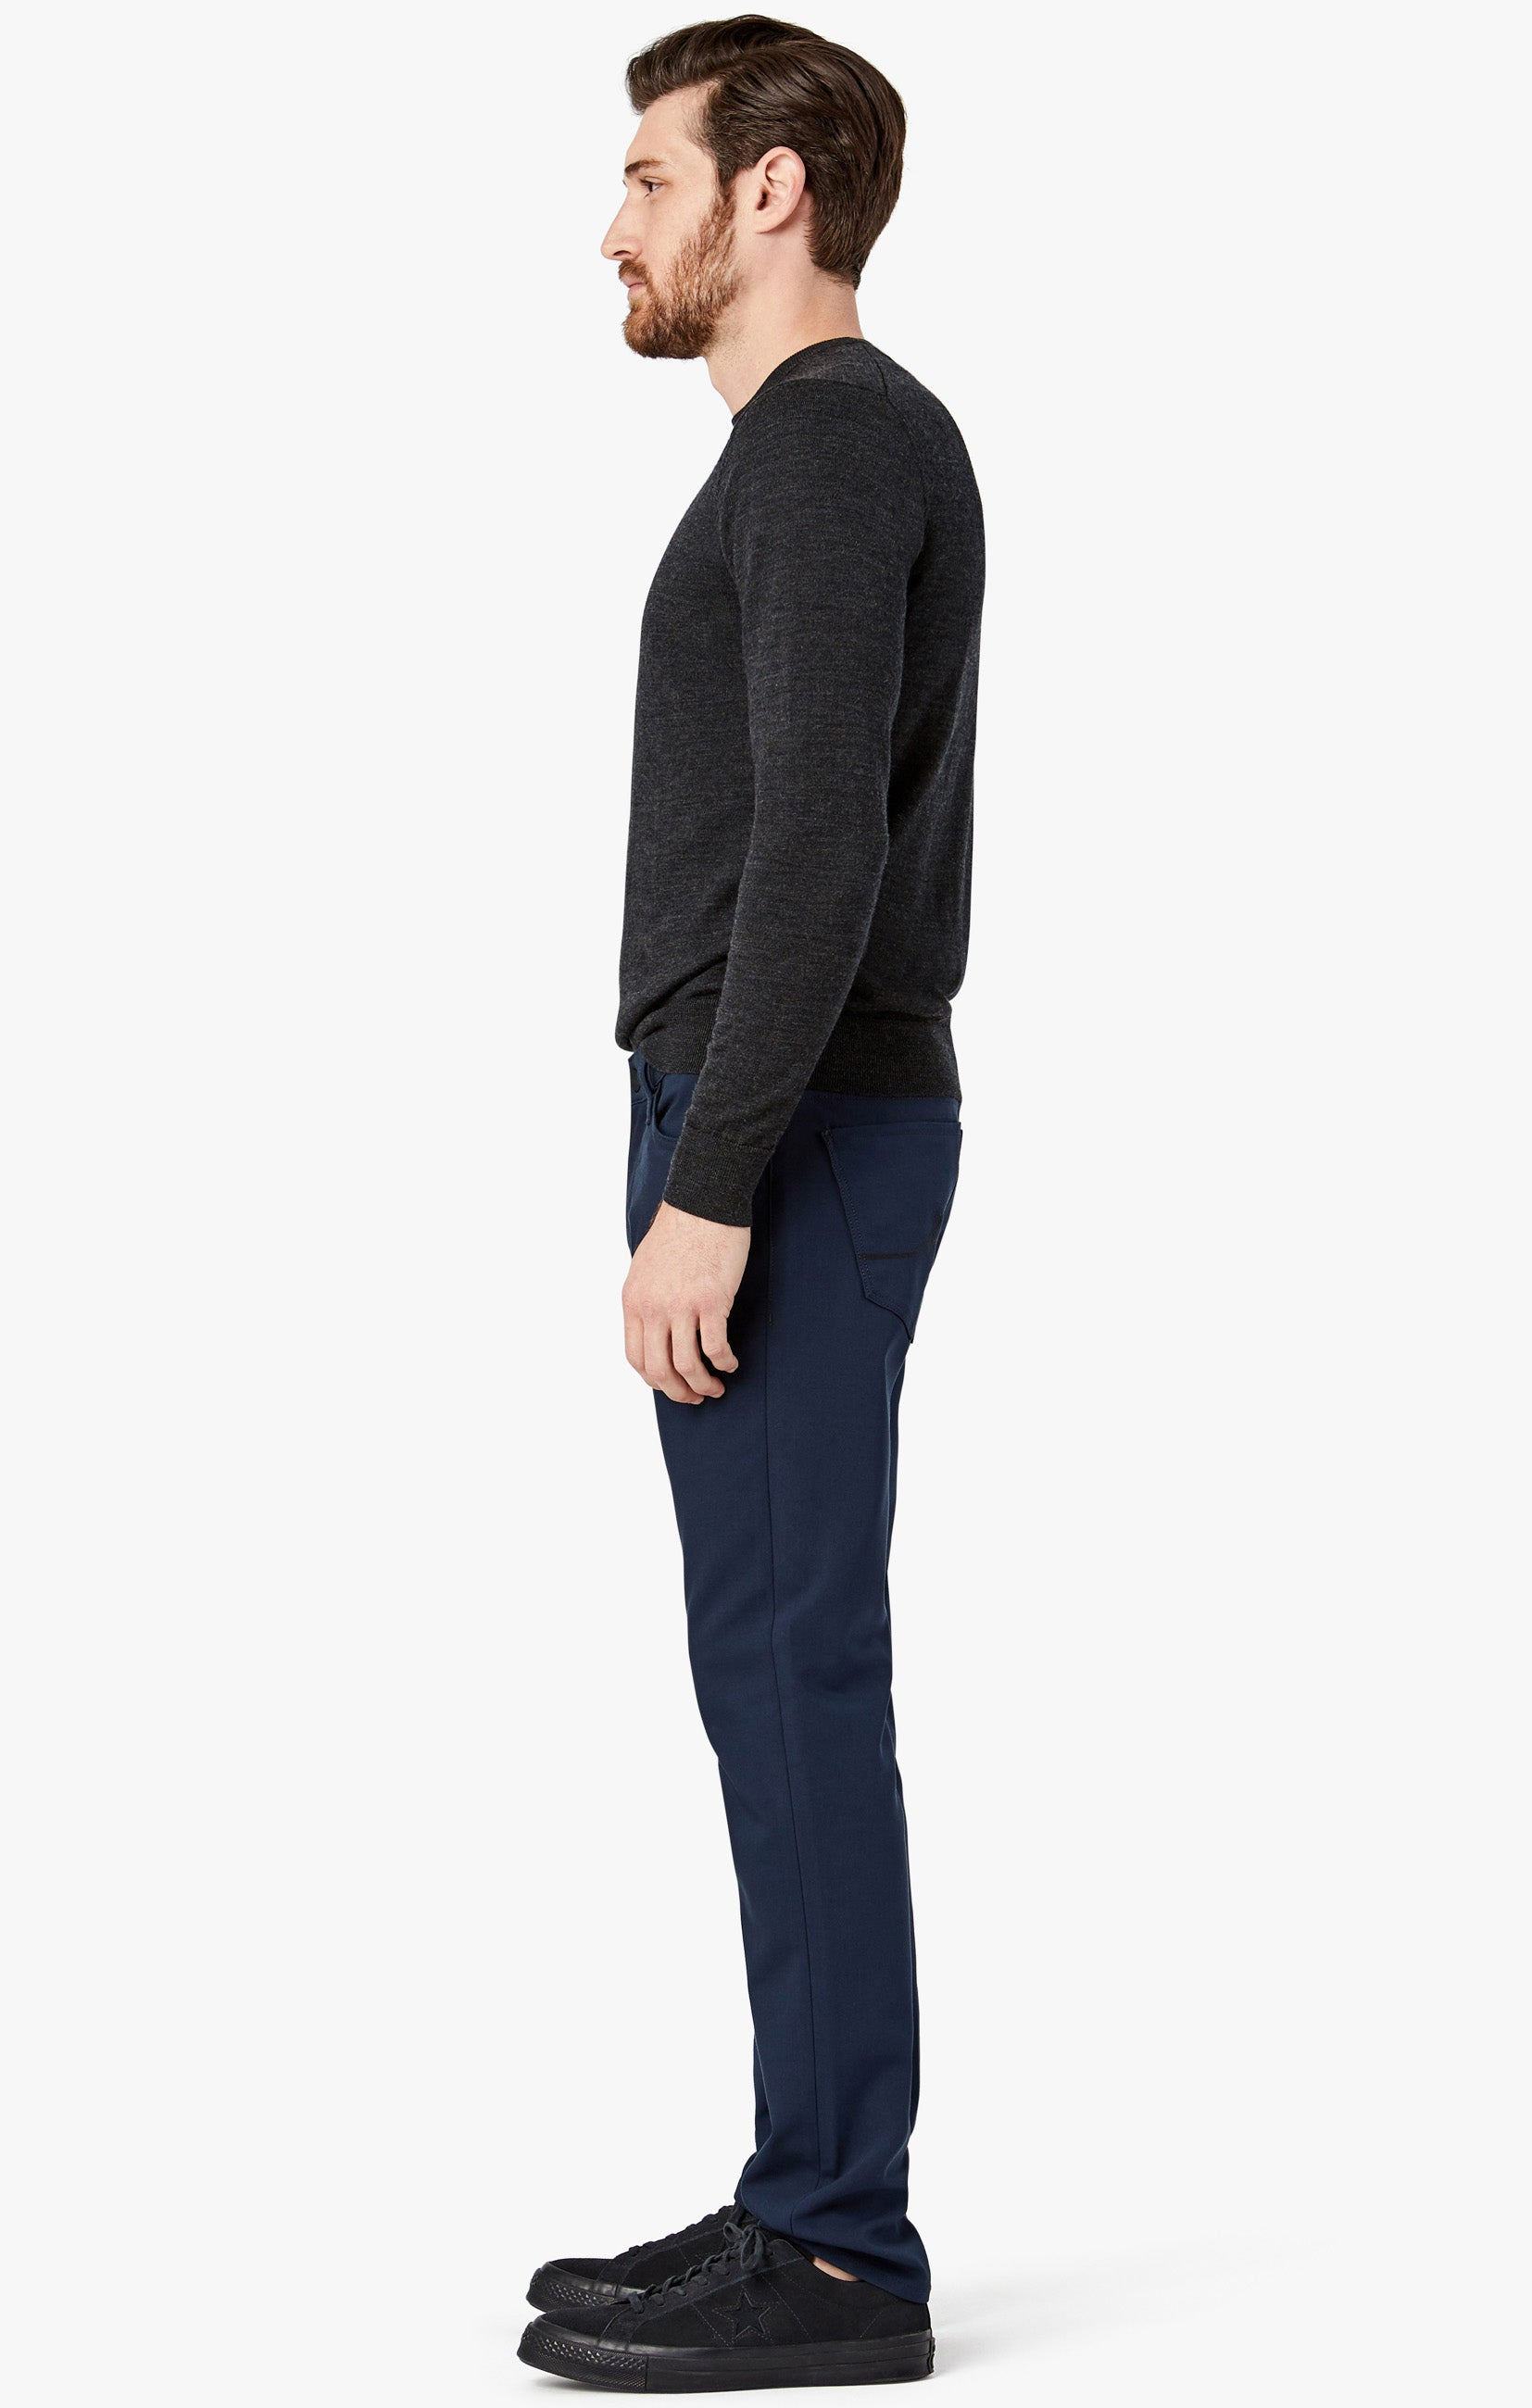 Courage Straight Leg Pants in Navy Commuter Image 8